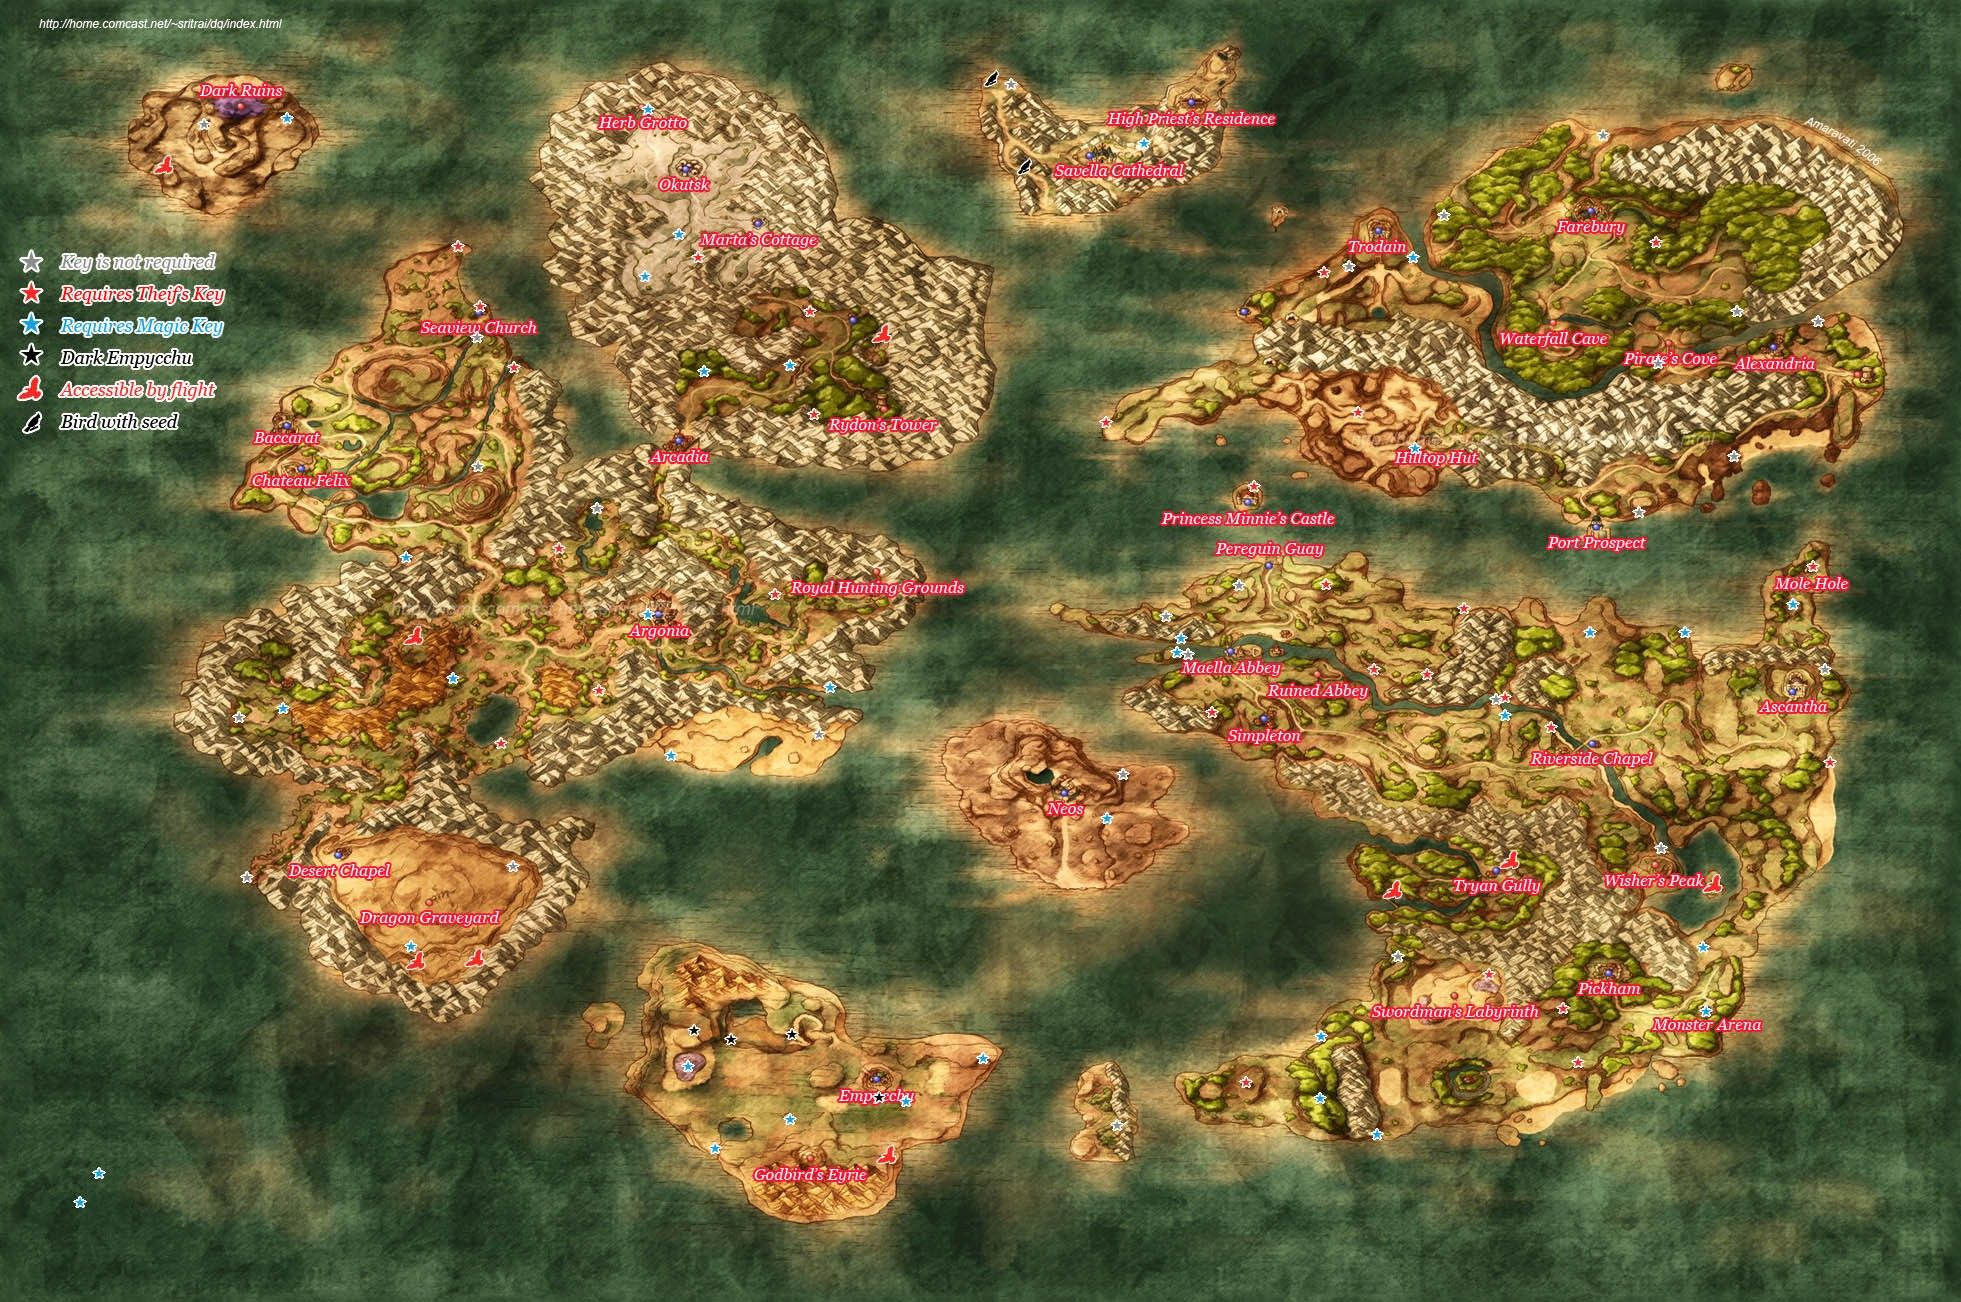 Dragon Quest Xi World Map Pin by Johar Henkel on My Saves in 2020 | Dragon quest, Dragon age